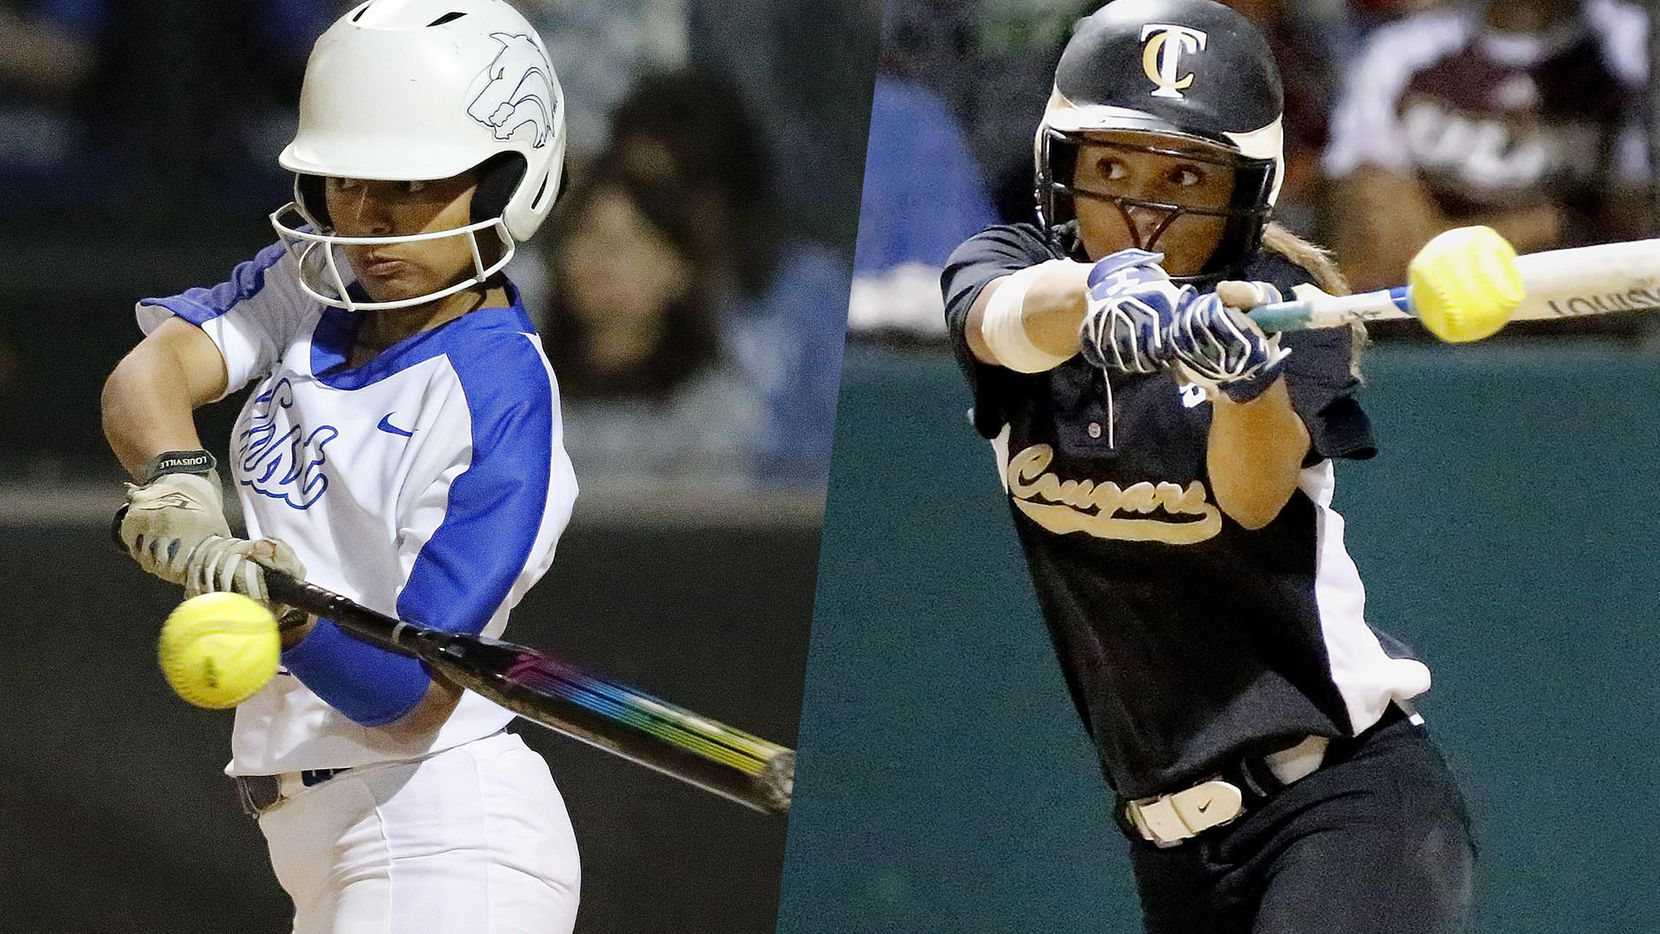 Plano West's Elisa Rosado (left) and The Colony's Jayda Coleman (right) slap hitting the ball.